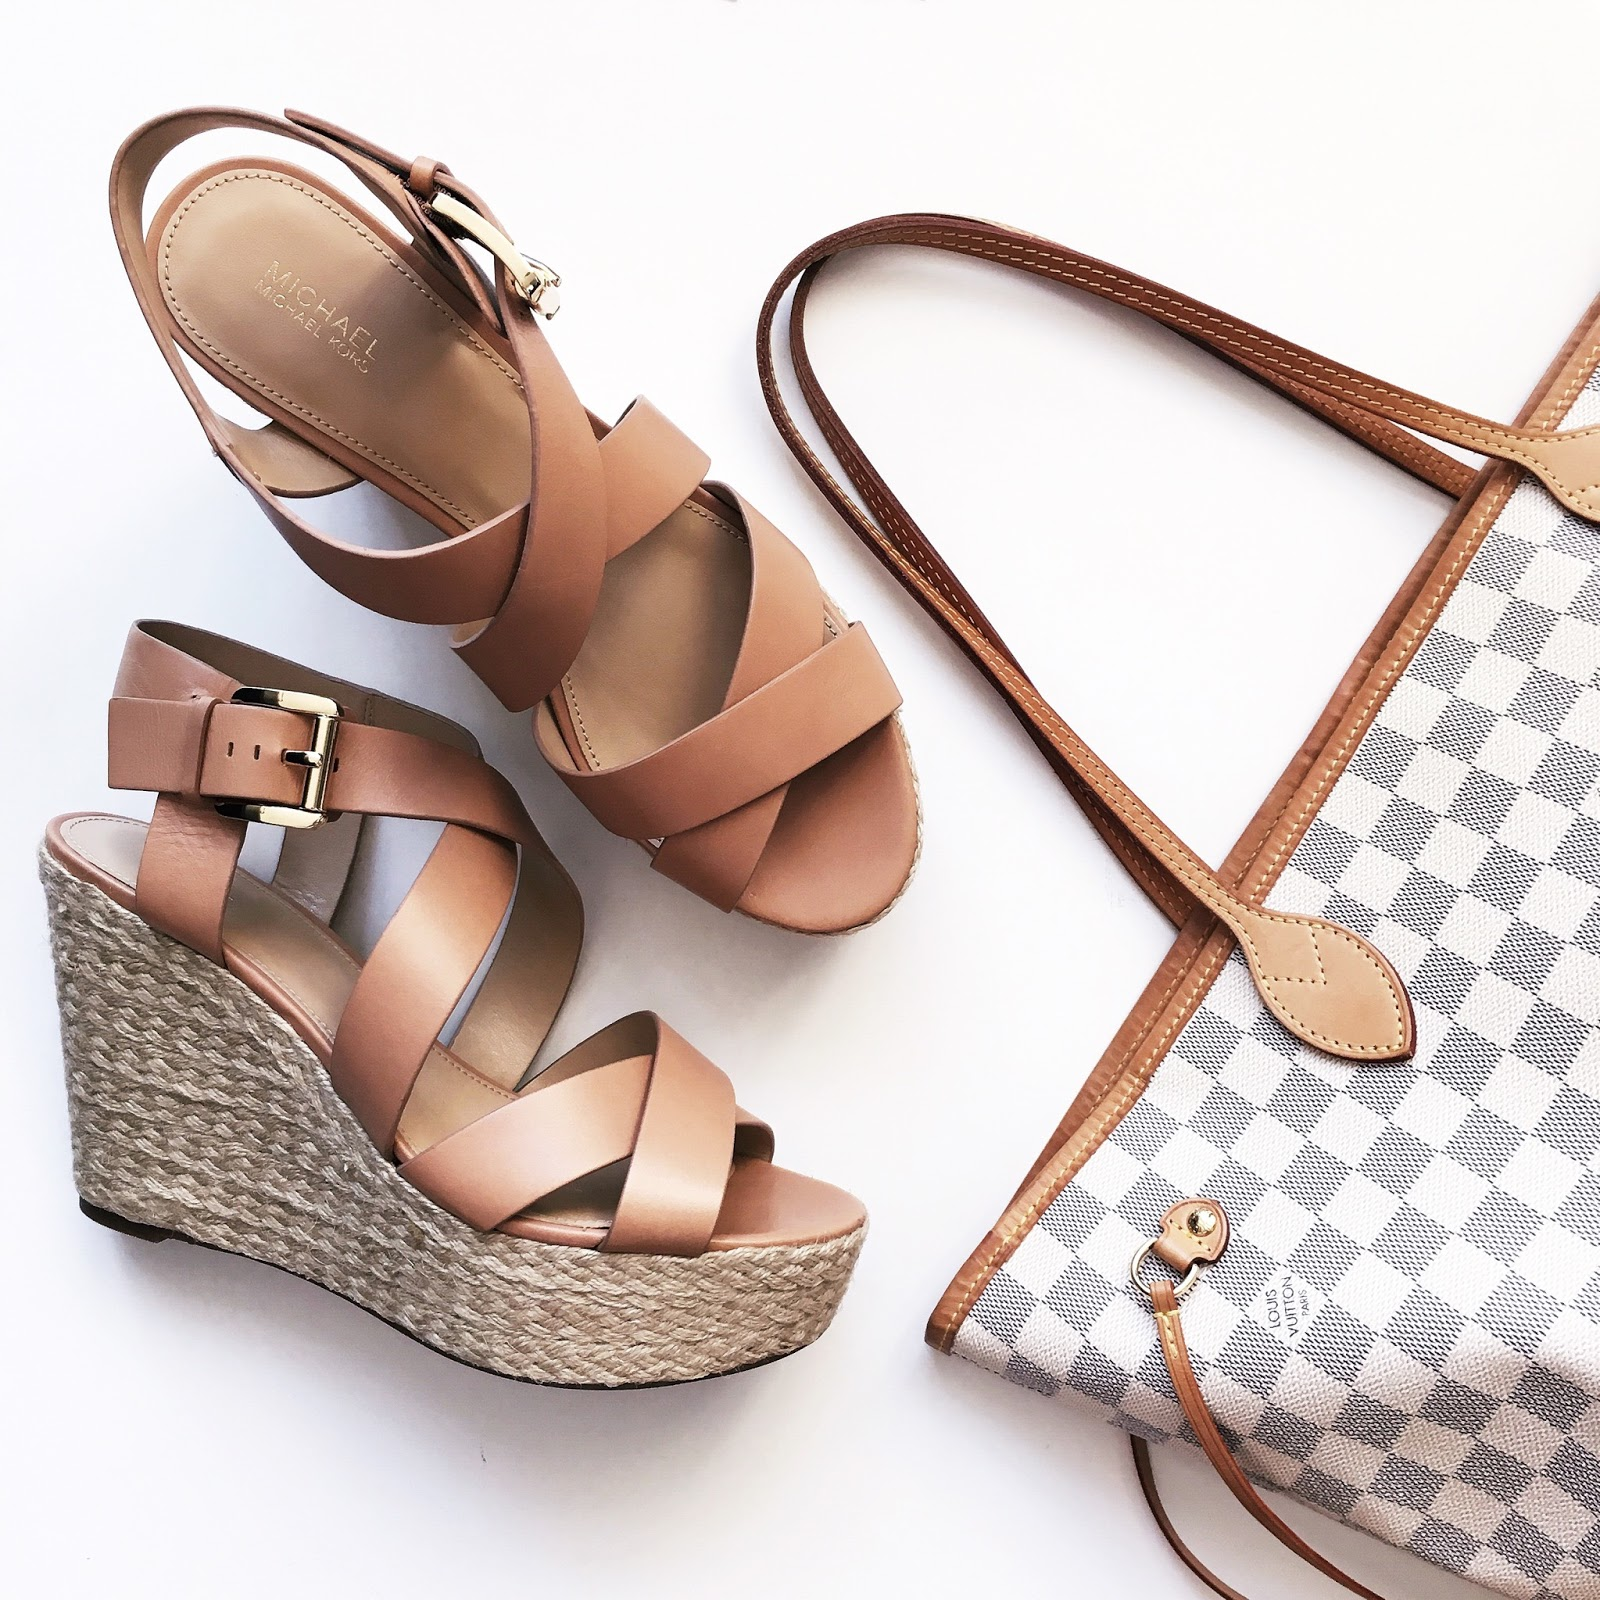 Michael Kors Wedge Sandals, Louis Vuitton Neverfull Tote Bag